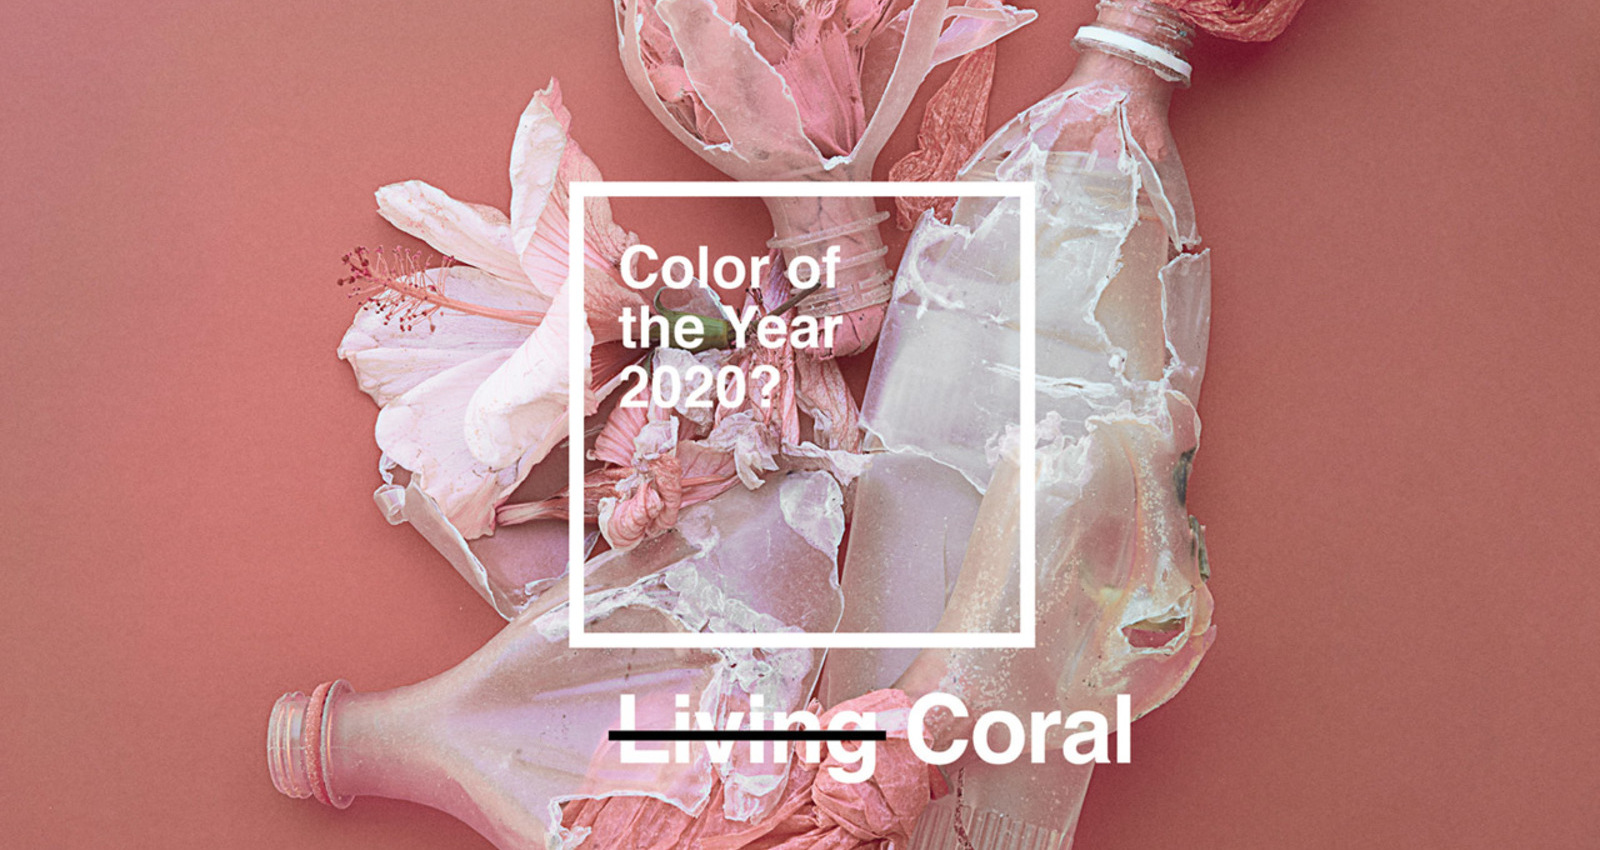 #KeepLivingCoral